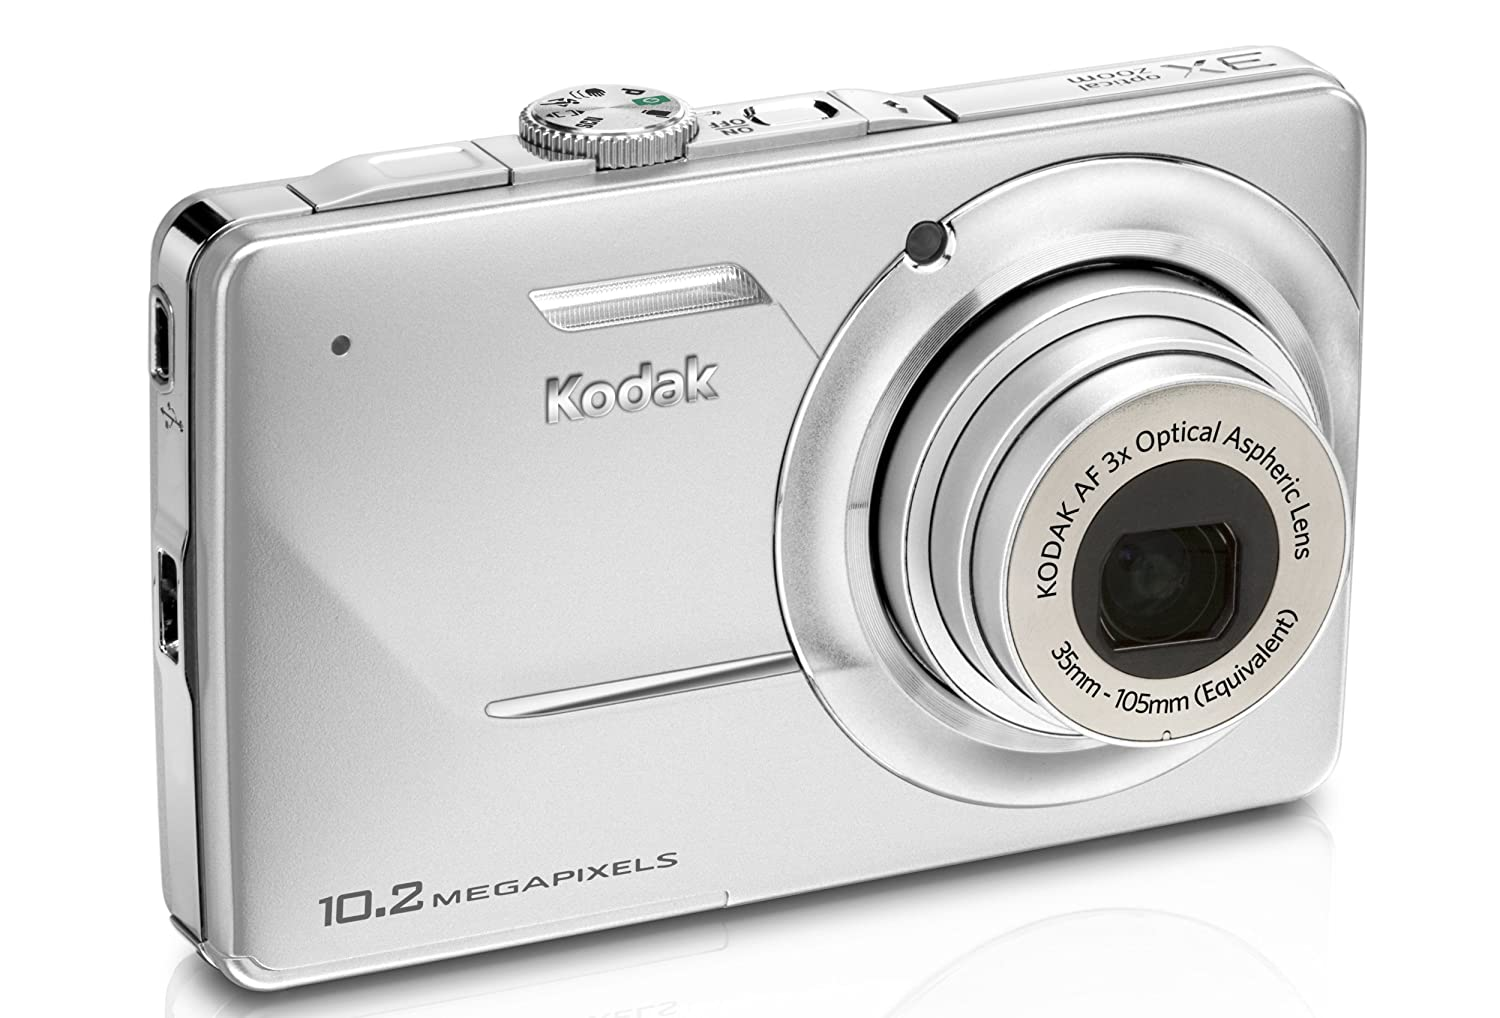 Amazon.com : Kodak Easyshare M340 Digital Camera (Silver) : Point And Shoot  Digital Cameras : Camera & Photo